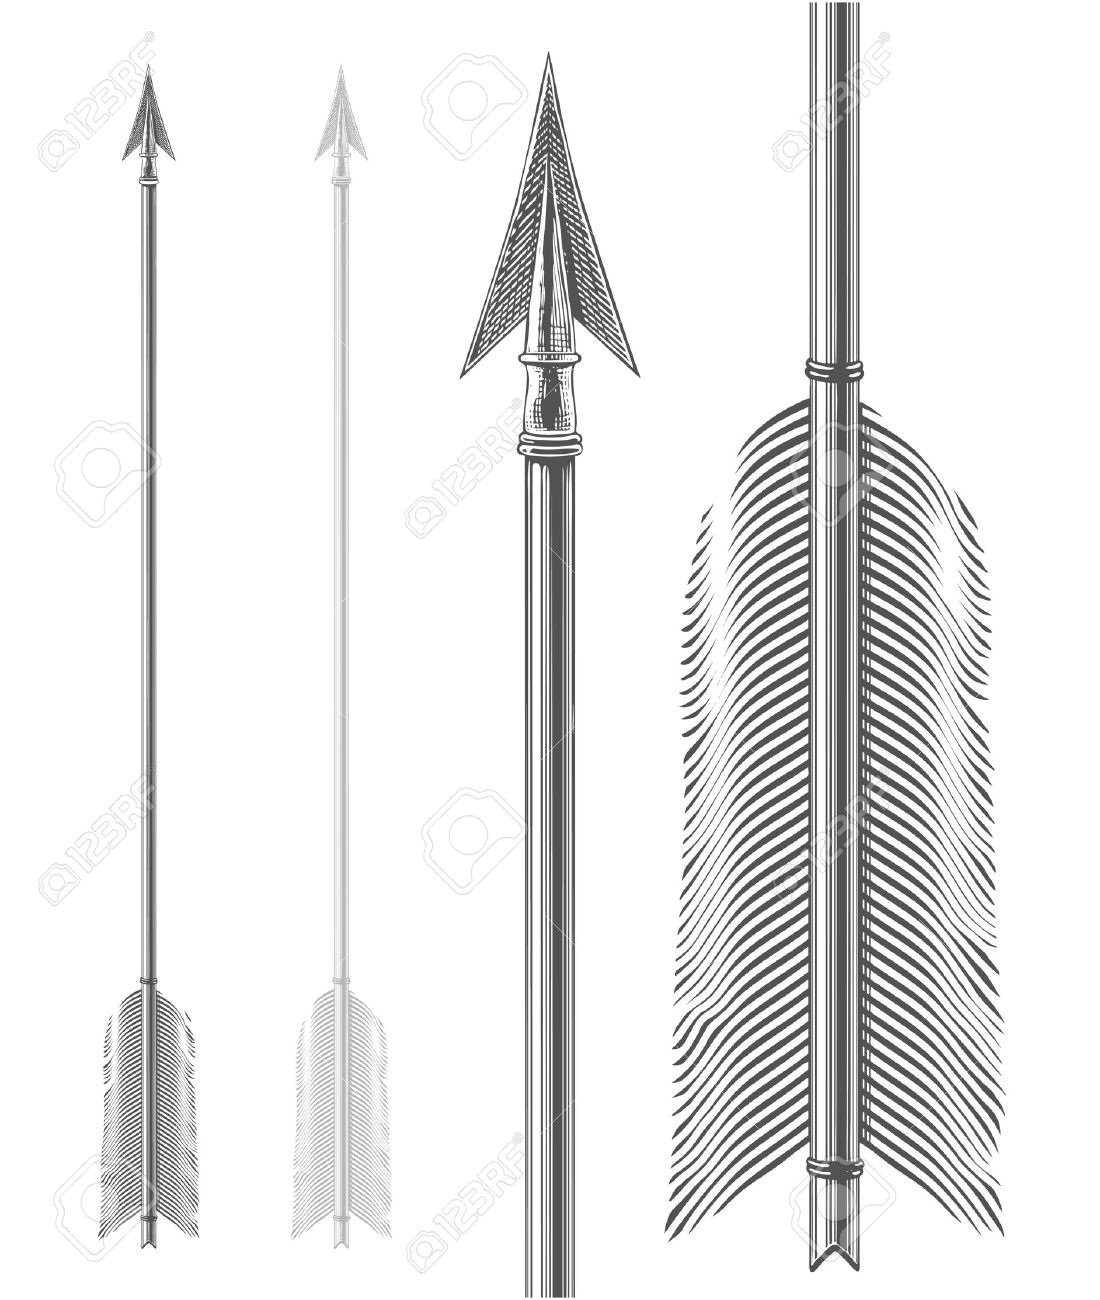 Vintage Arrow In Engraving Style Royalty Free Cliparts Vectors And